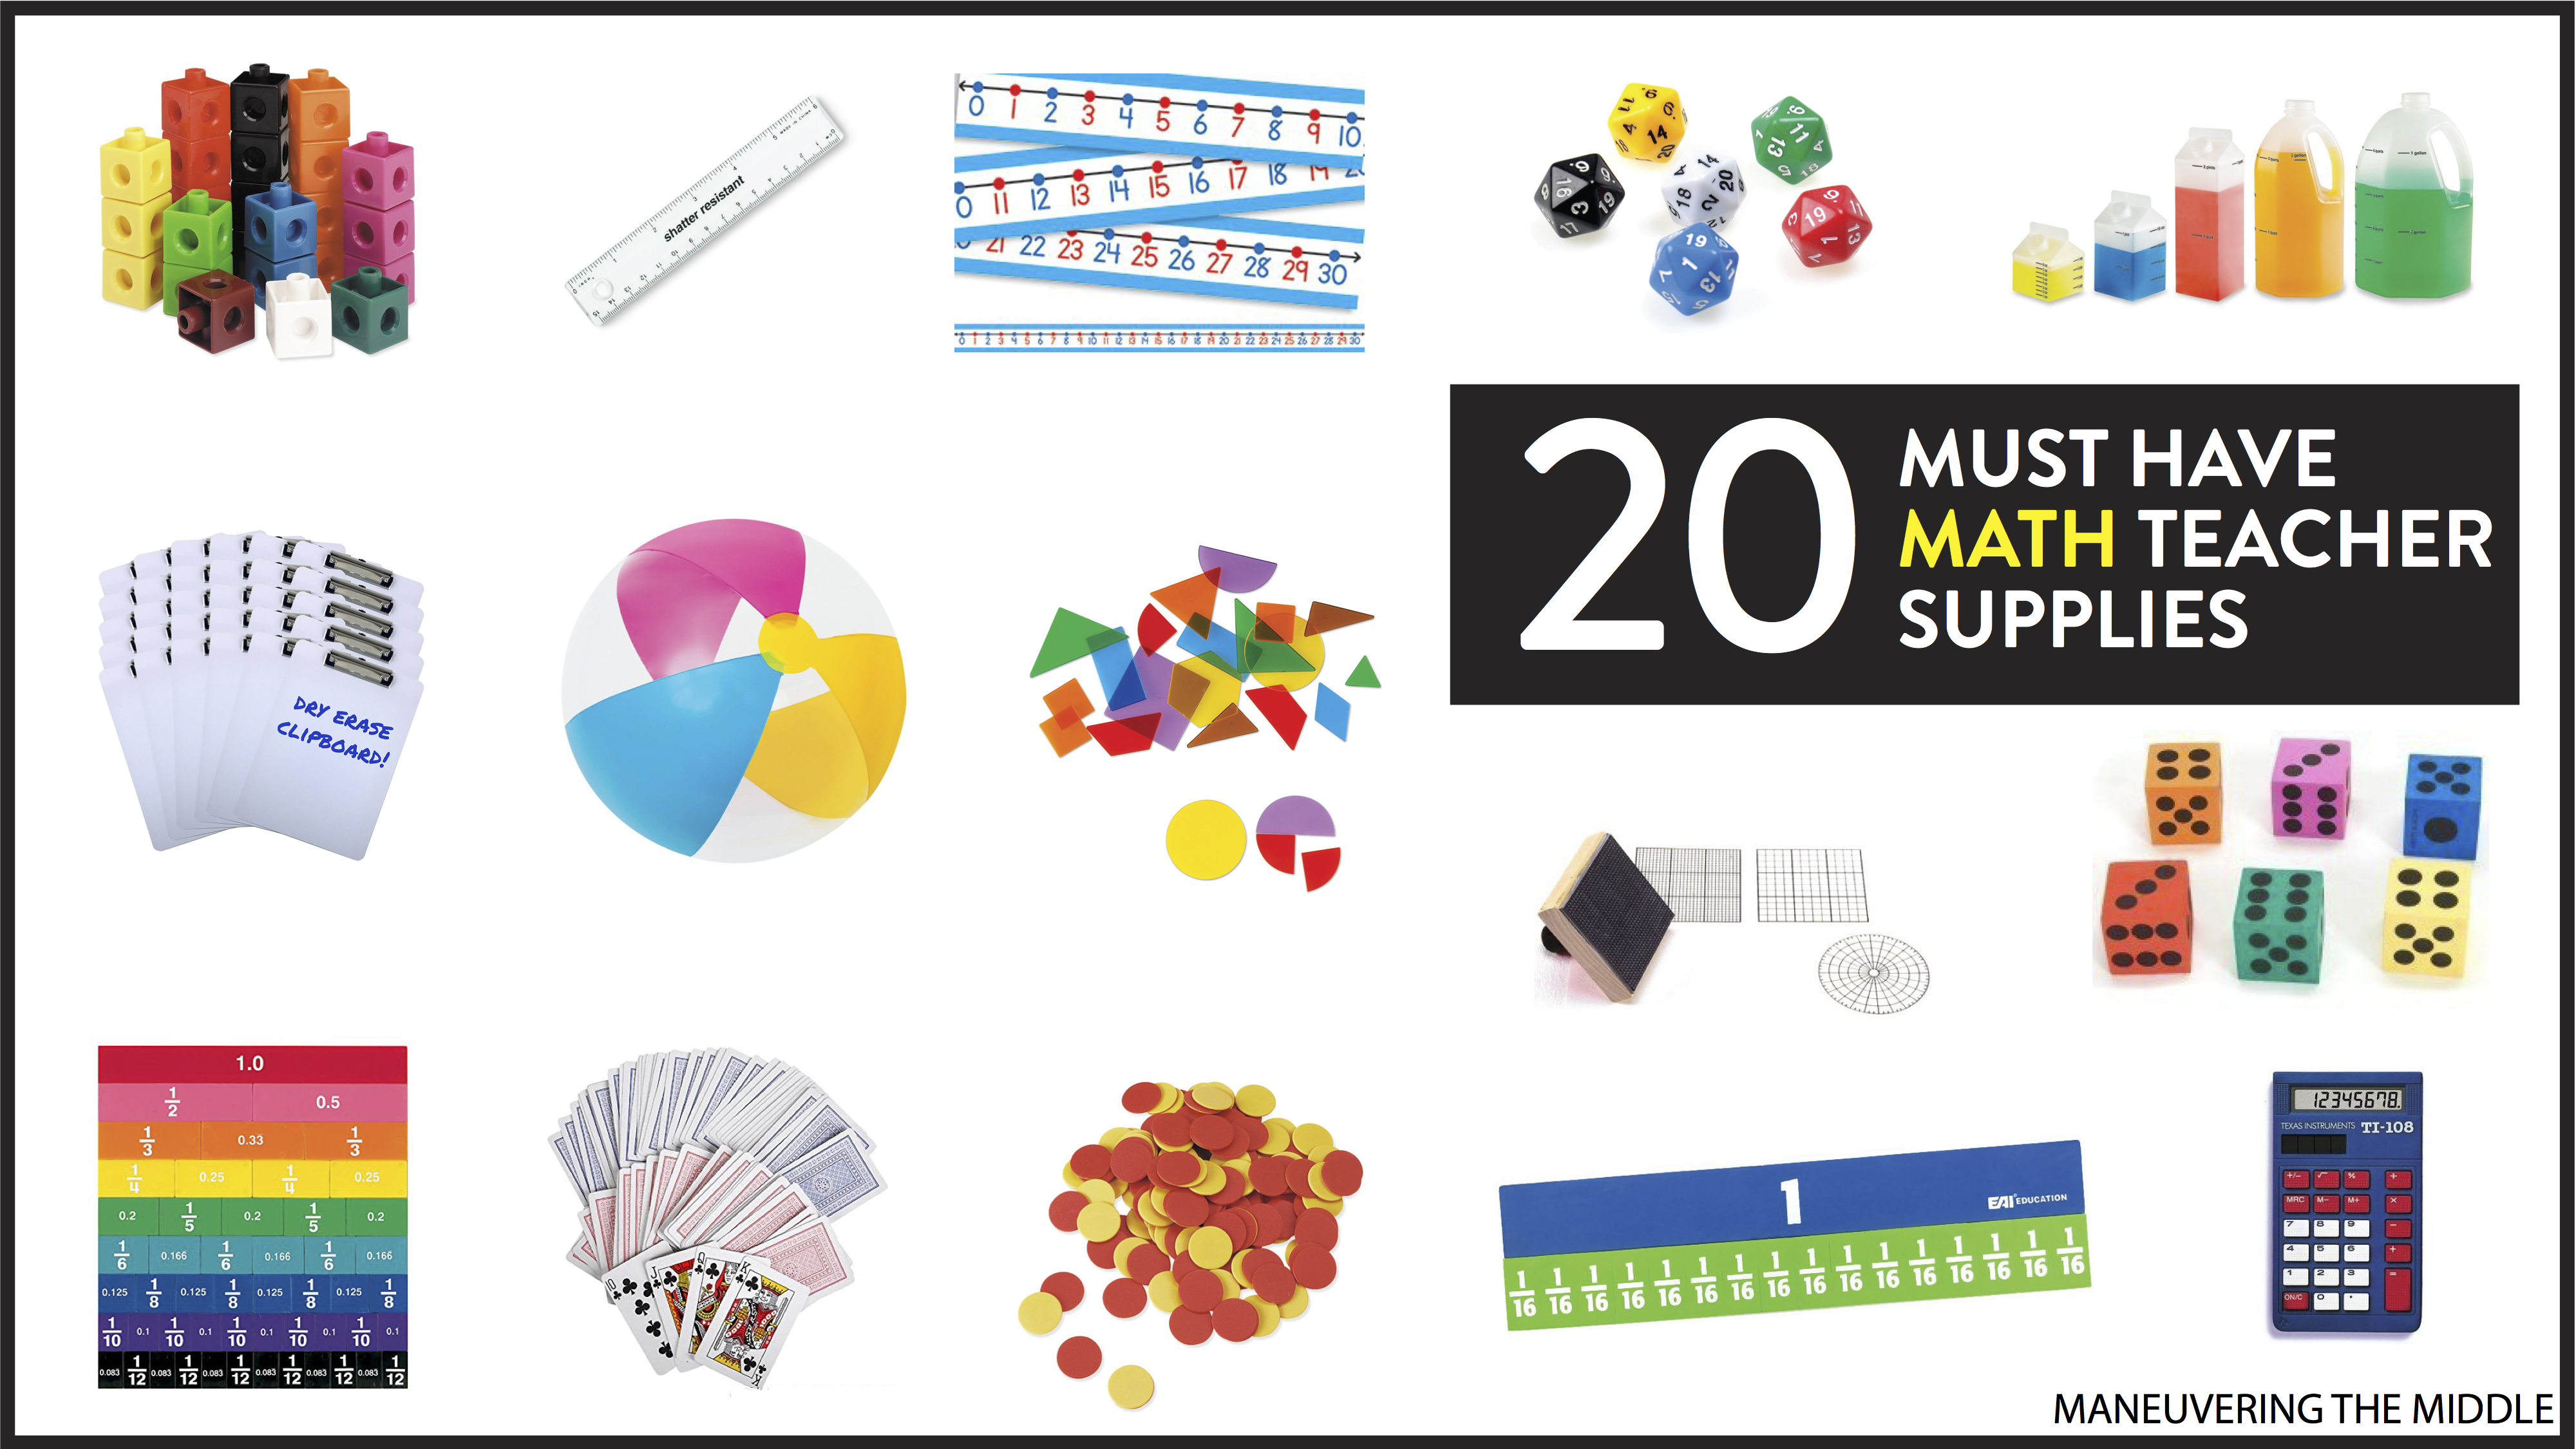 20 Must Have Math Teacher Supplies - Maneuvering the Middle